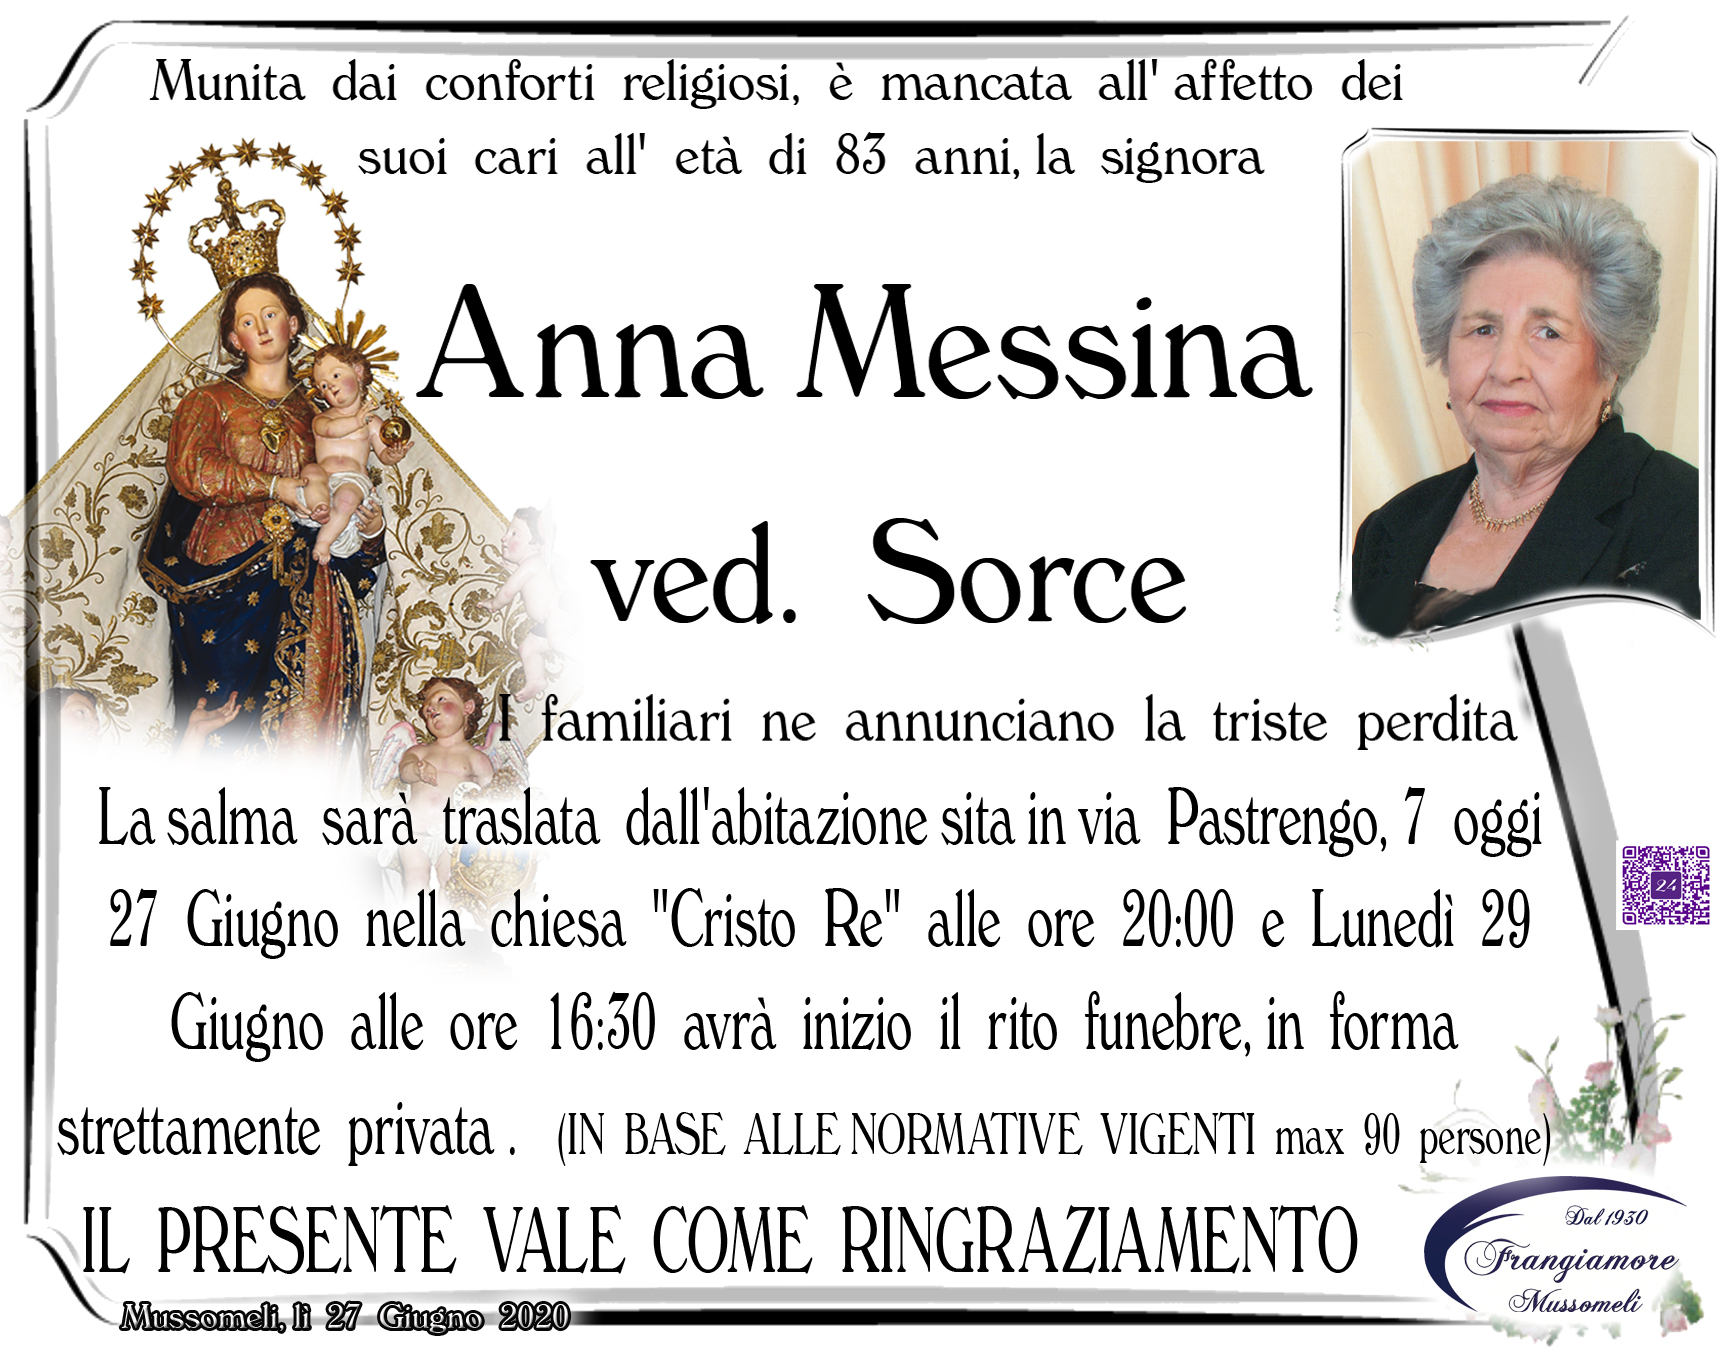 Anna Messina ved. Sorce